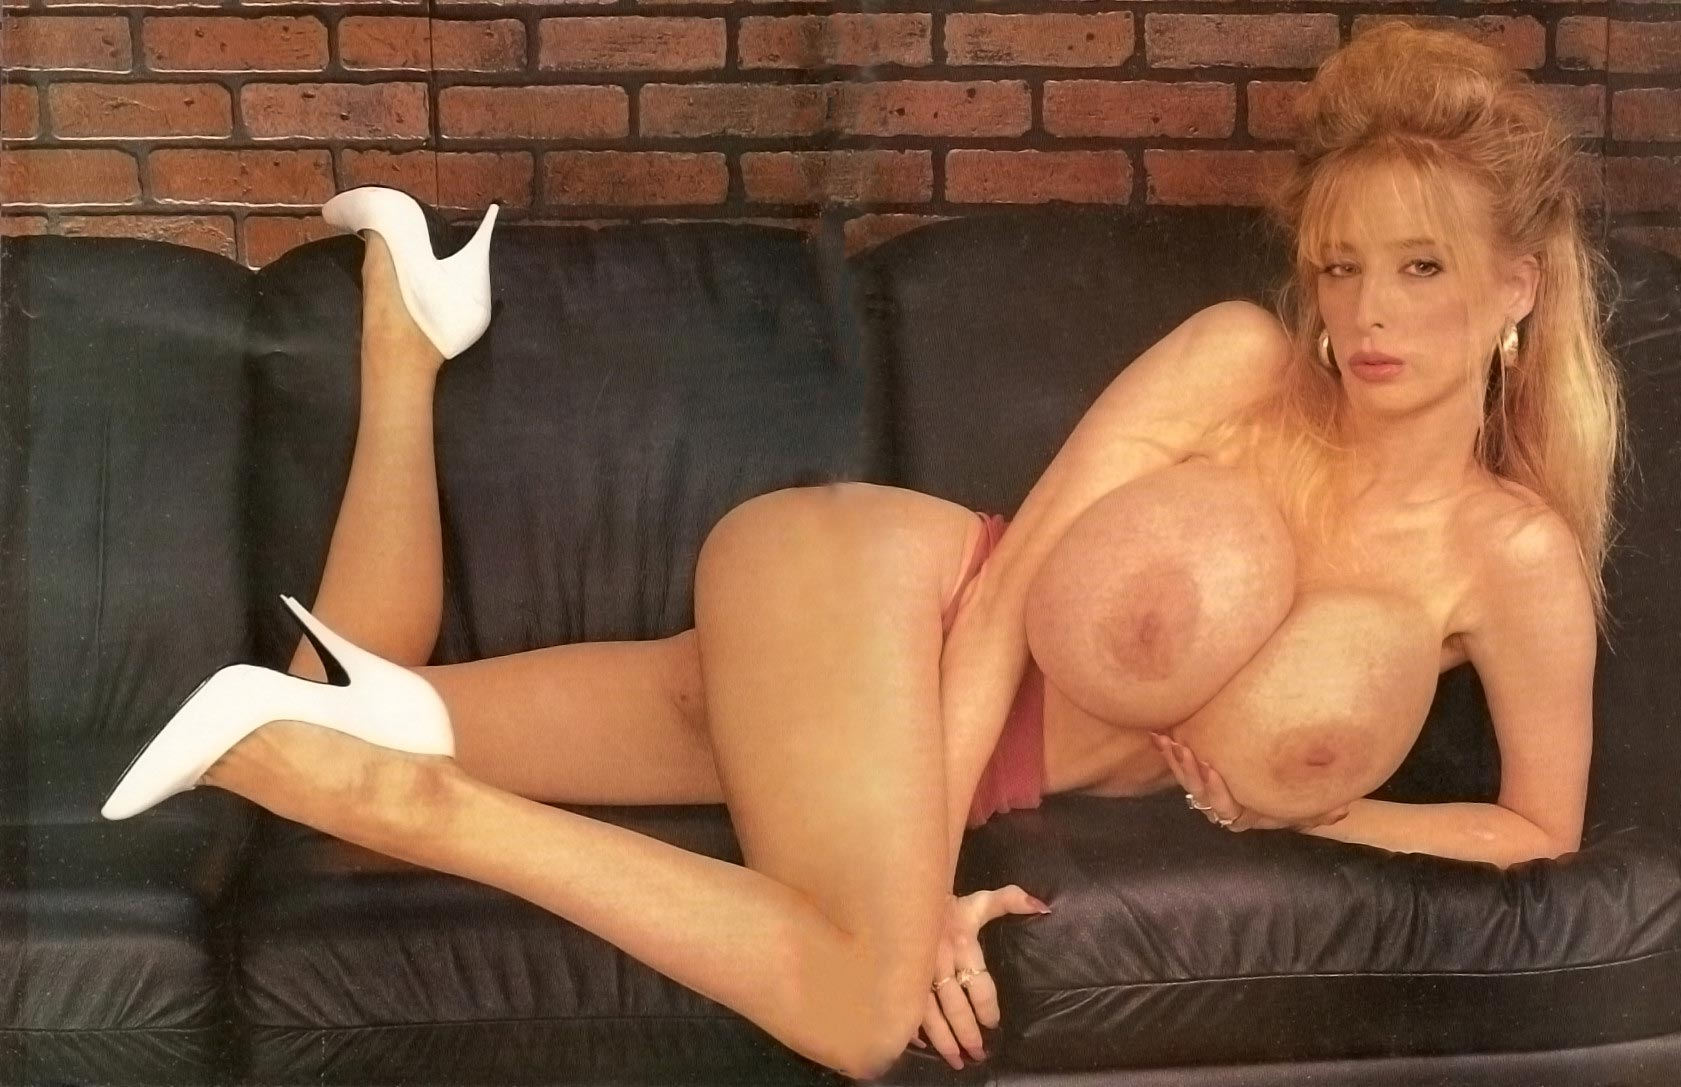 wendy-whoppers-classic-giant-tits-in-a-magazine4